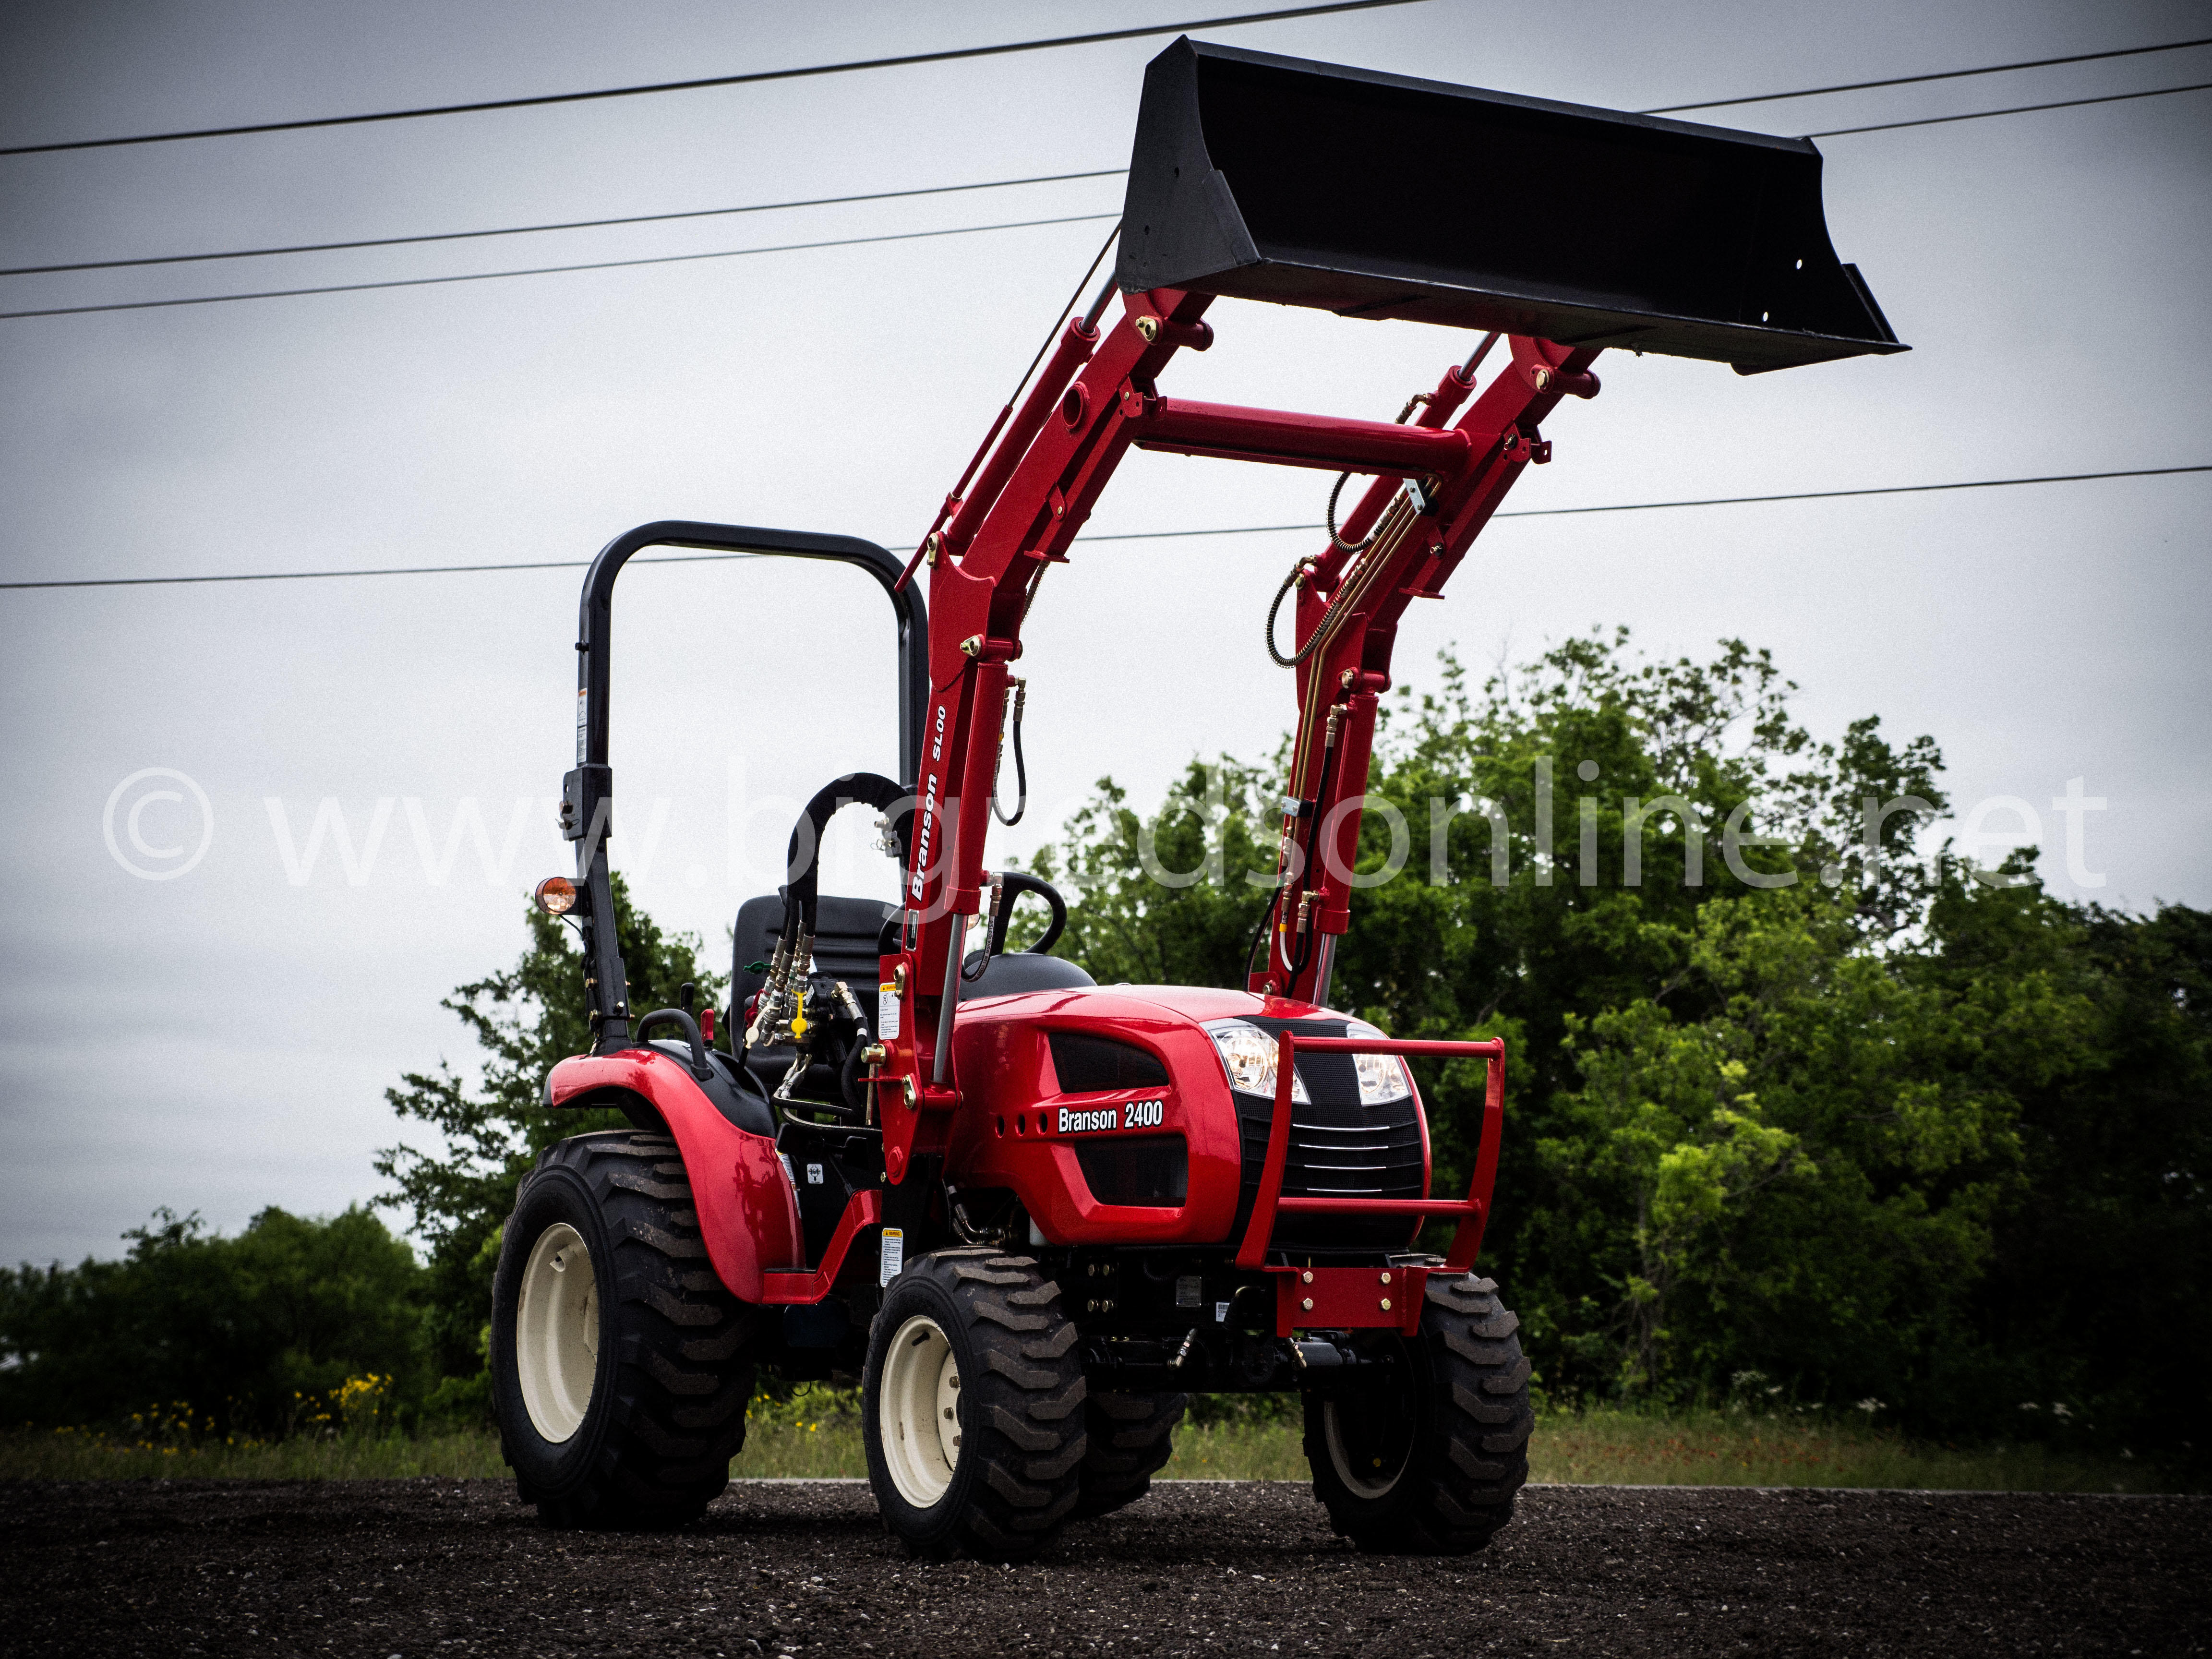 Big Red's Equipment Sales - Farm Equipment & Machinery